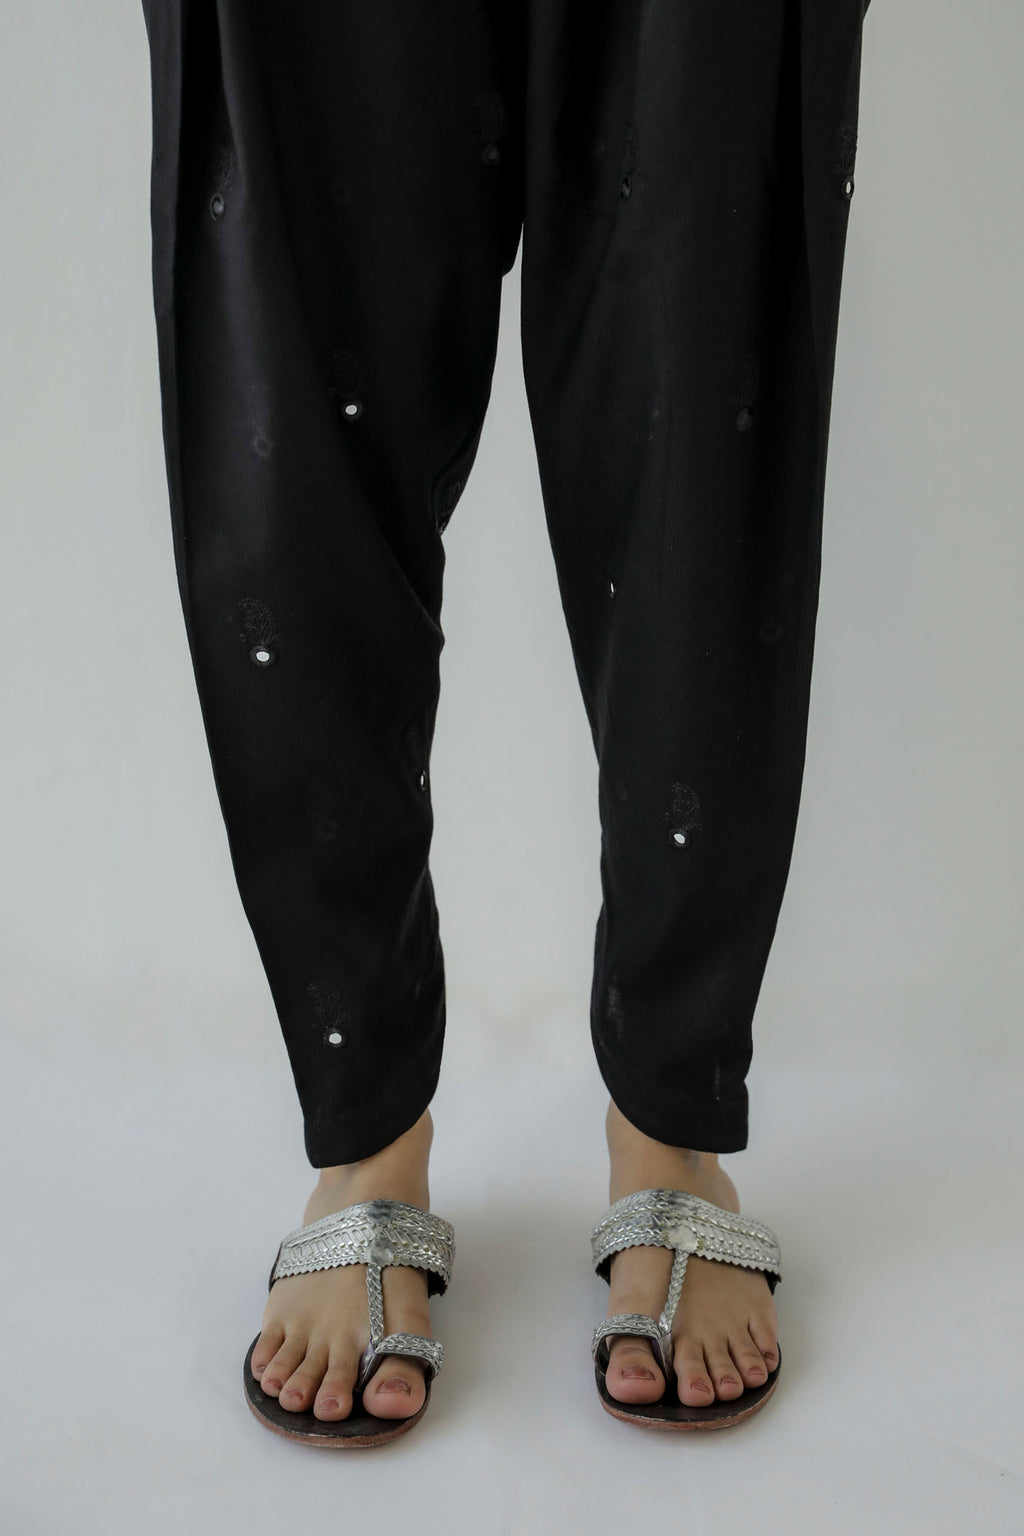 NARROW TULIP PANTS (WBR401401) - Ethnic by Outfitters